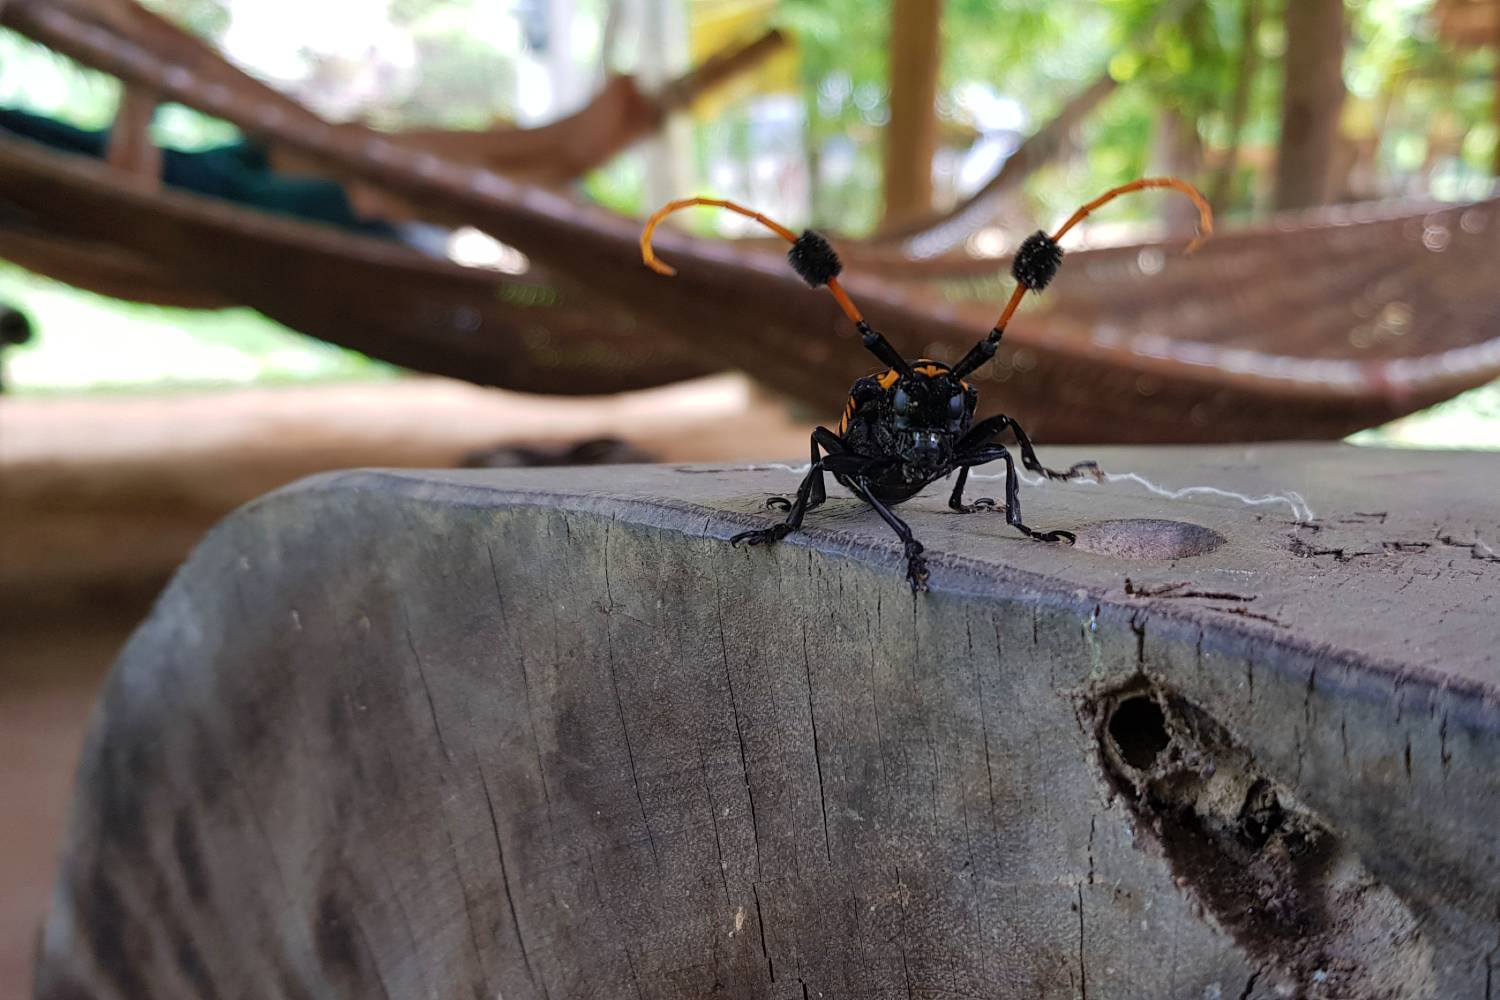 Strange bug while we visited the Pai Land Split in Thailand